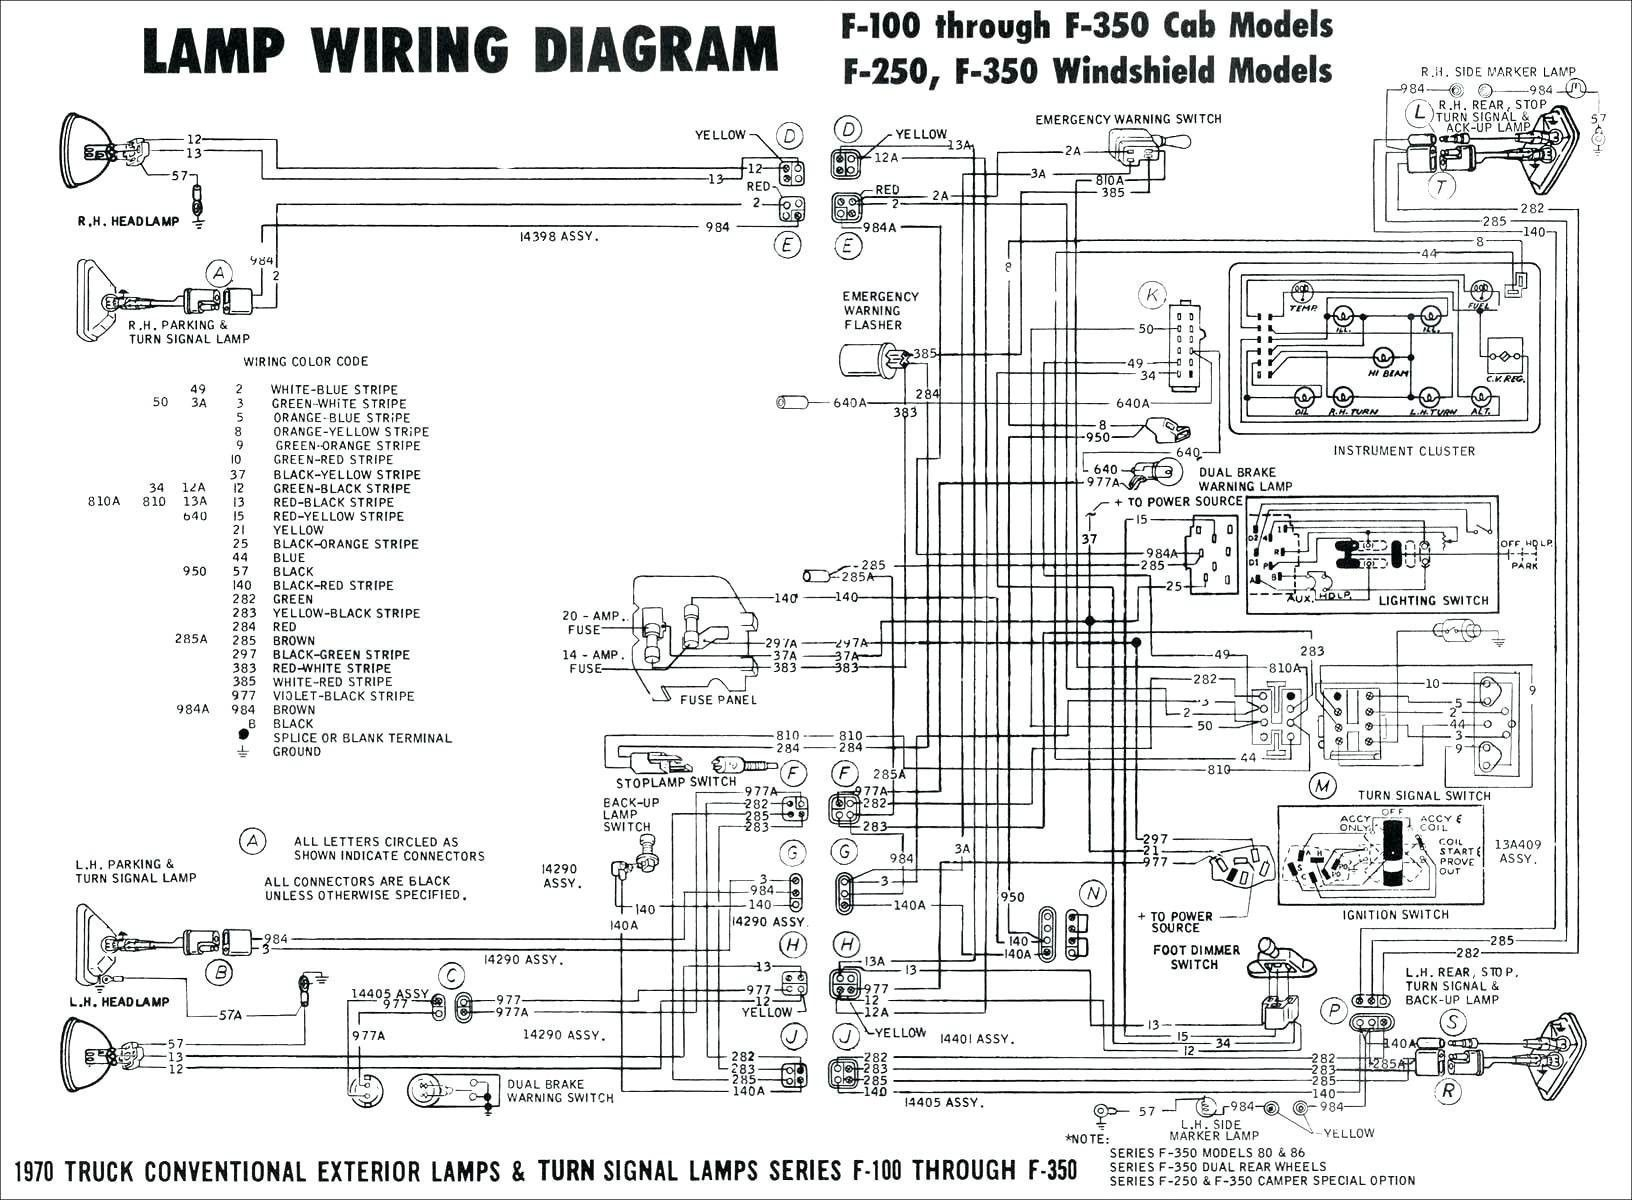 Elegant 2001 Honda Civic Wiring Diagram In 2020 Electrical Wiring Diagram Diagram Trailer Wiring Diagram